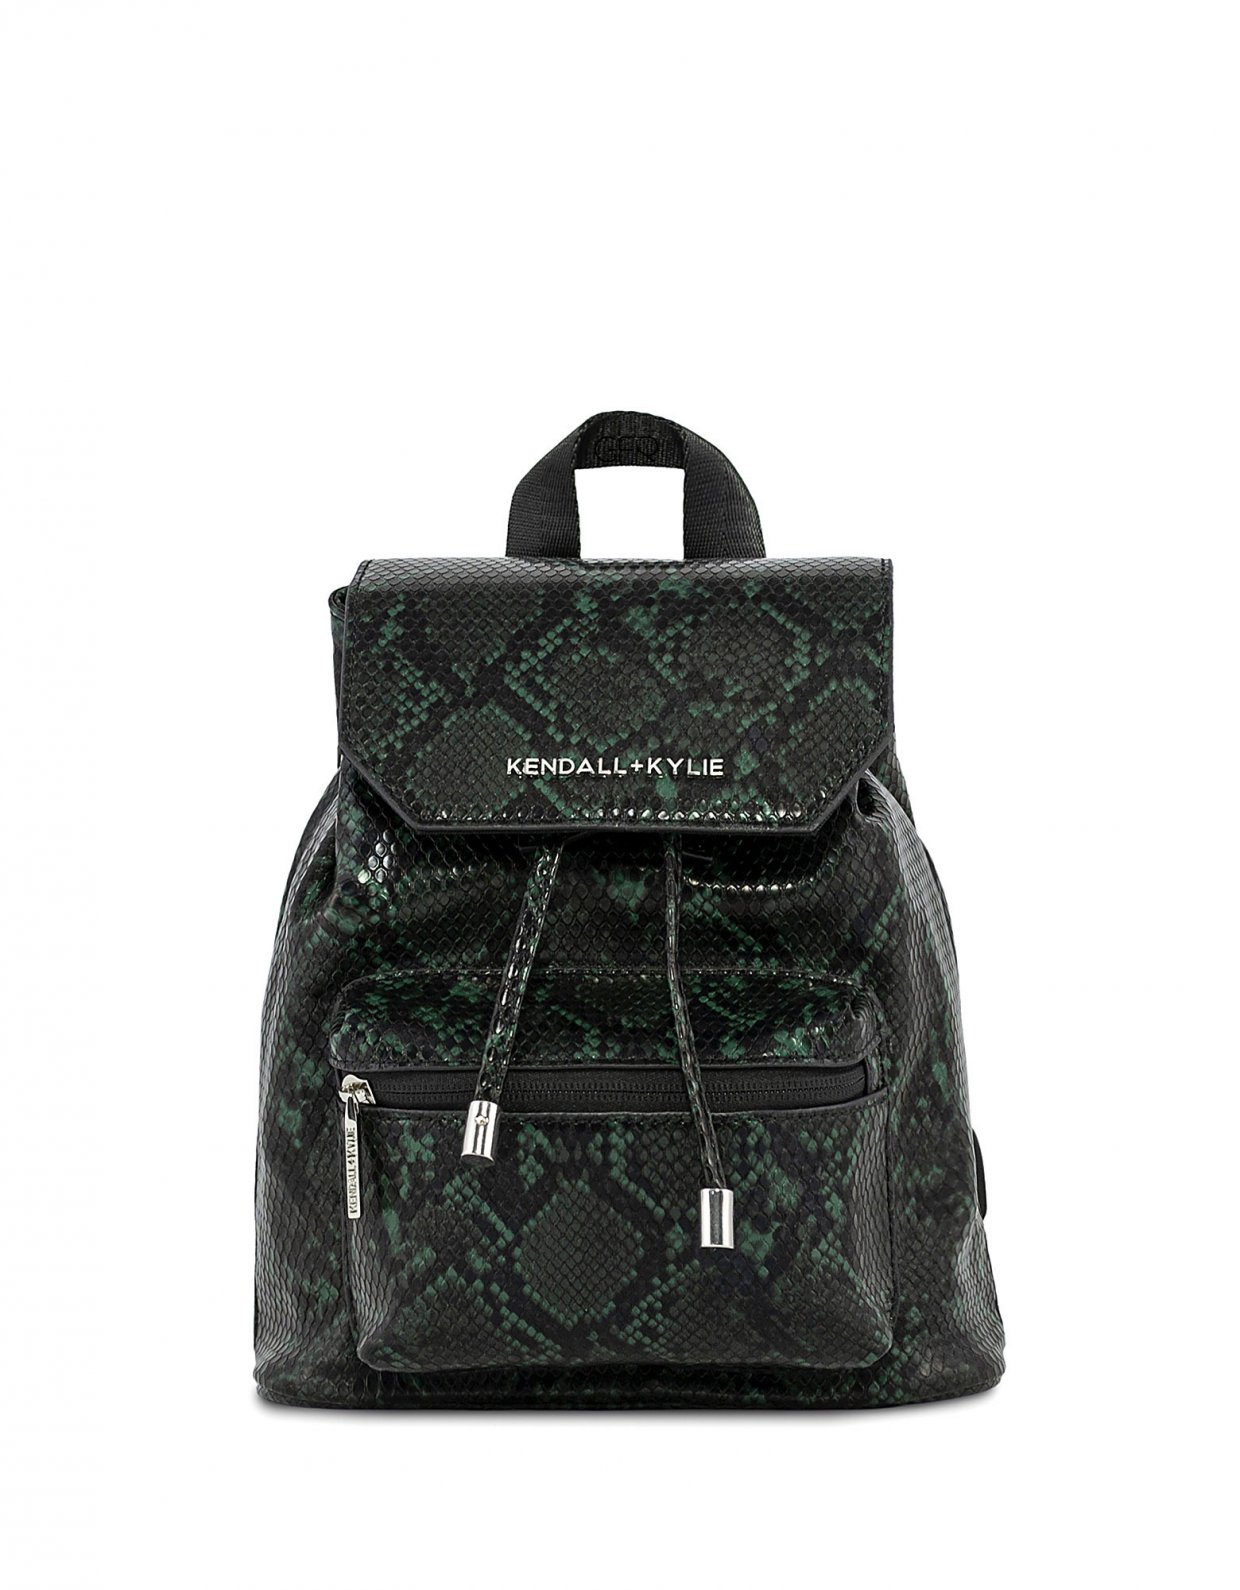 Kendall + Kylie Serena small backpack green snake